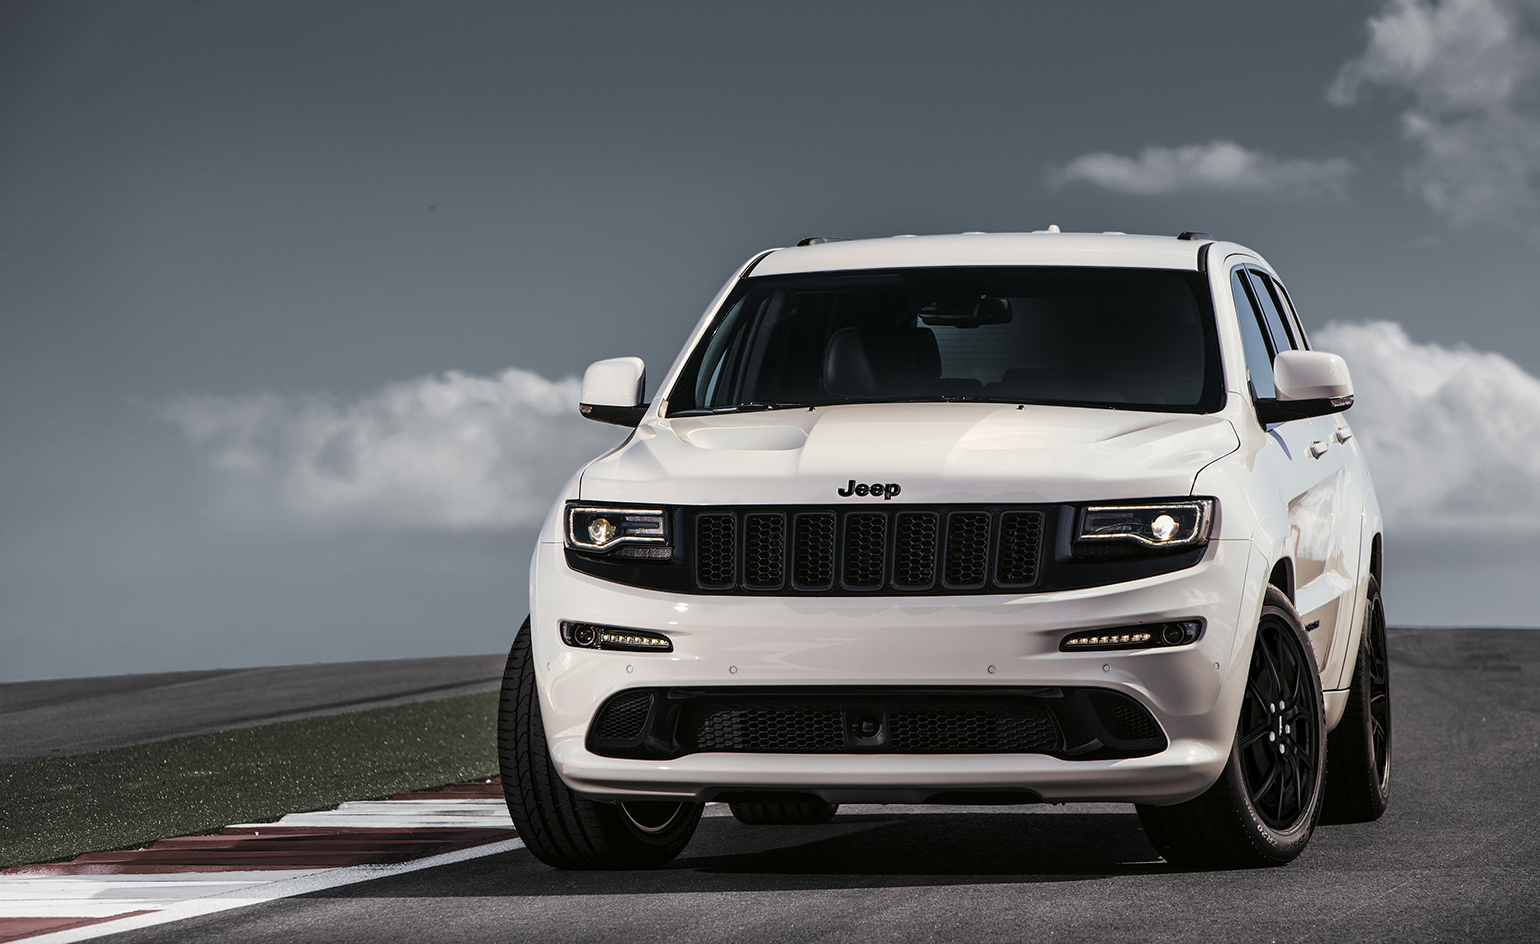 The Jeep Grand Cherokee Srt Is A Big Brash Riff On The Suv Wallpaper